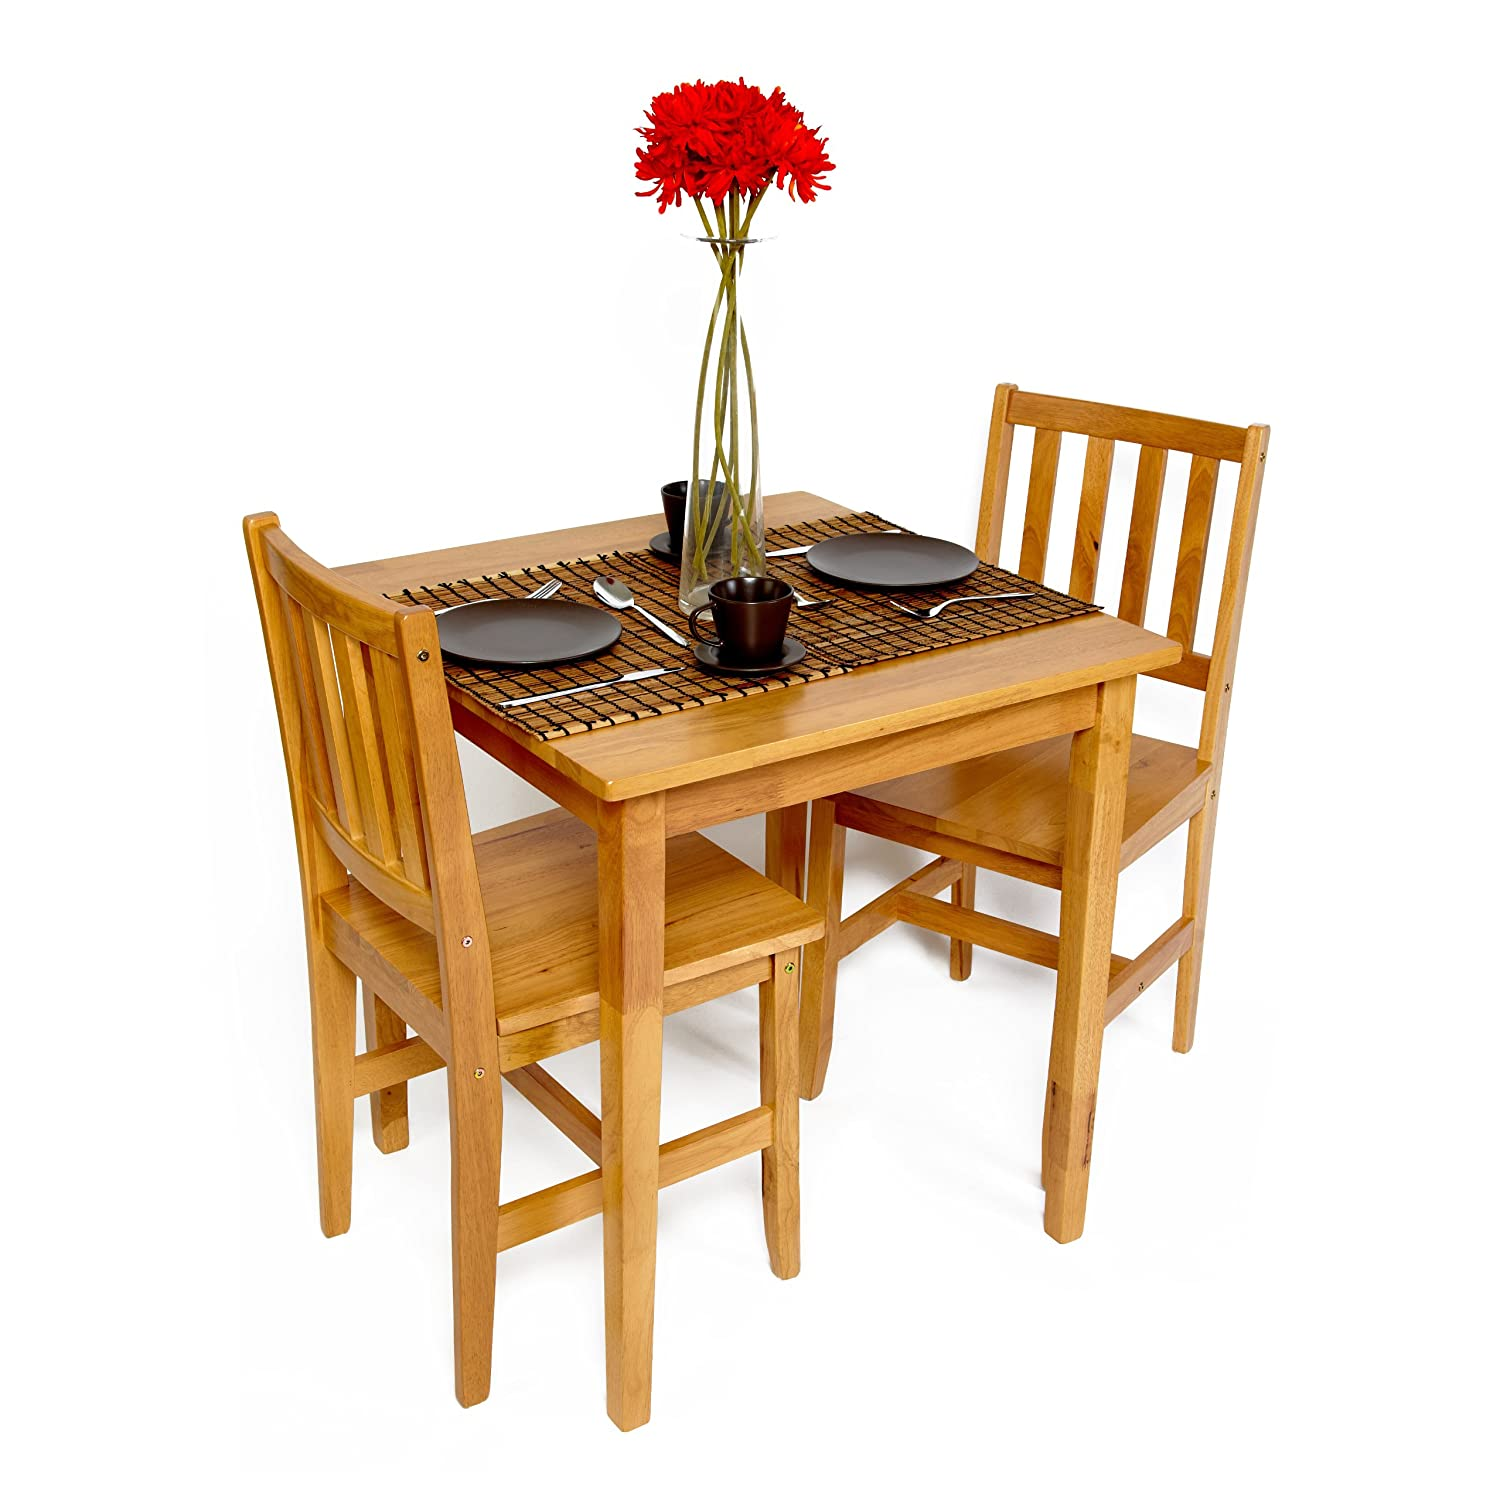 Table and chairs set dining bistro small cafe tables wood for Small kitchen tables for two